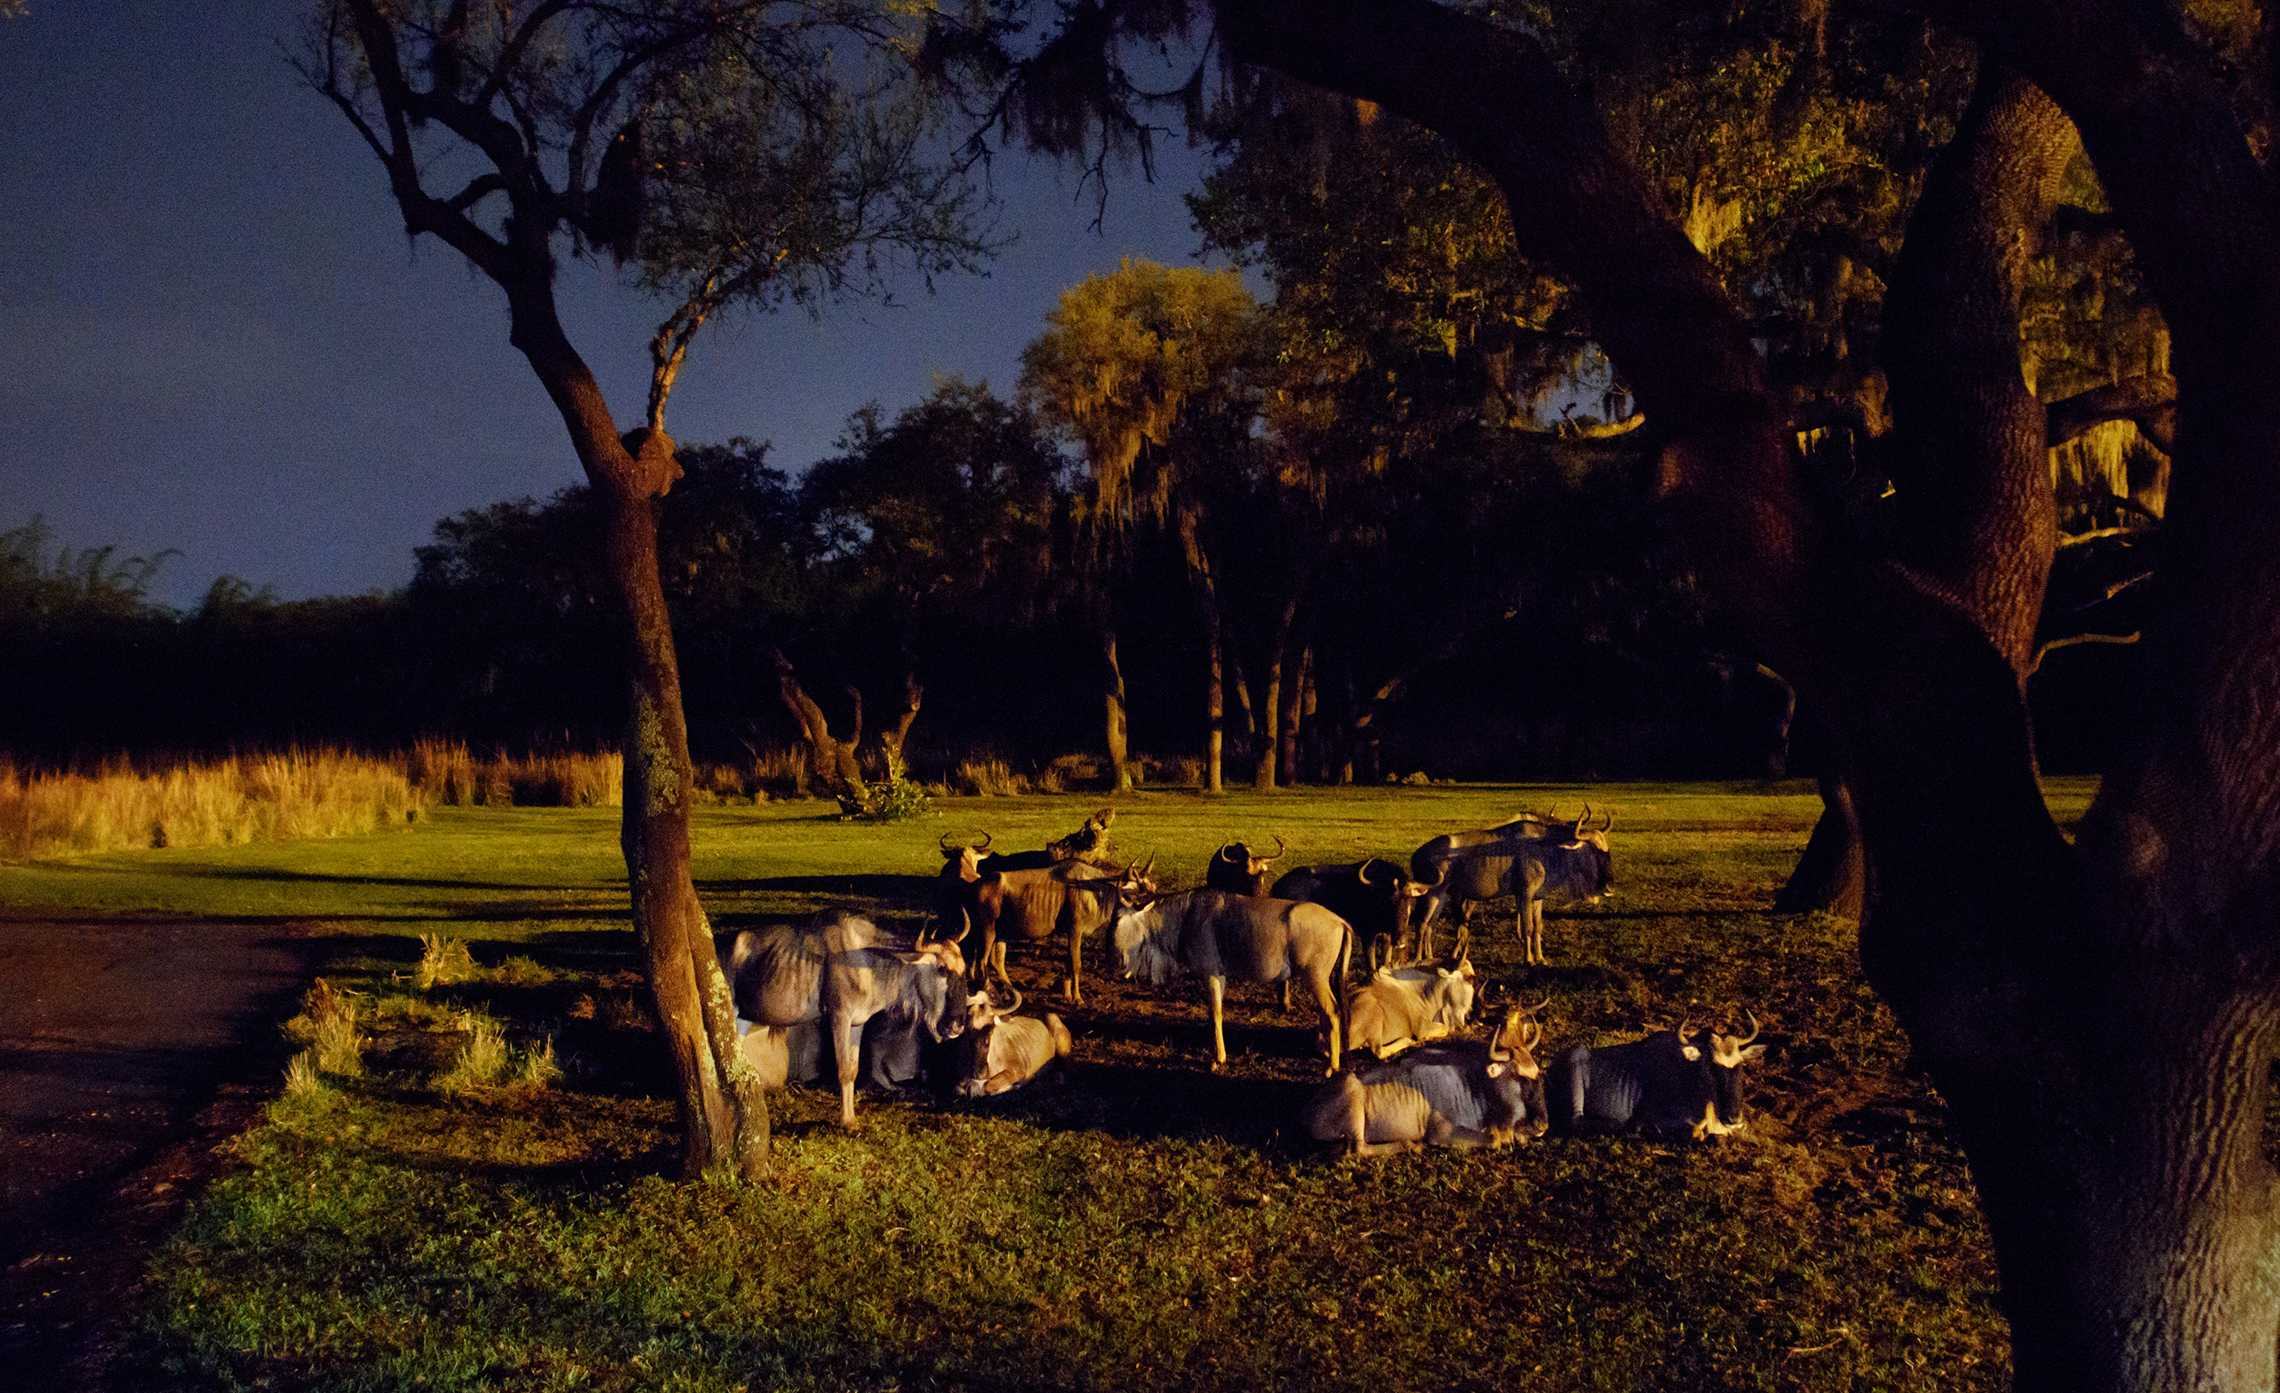 Savor the Savanna: Evening Safari Experience